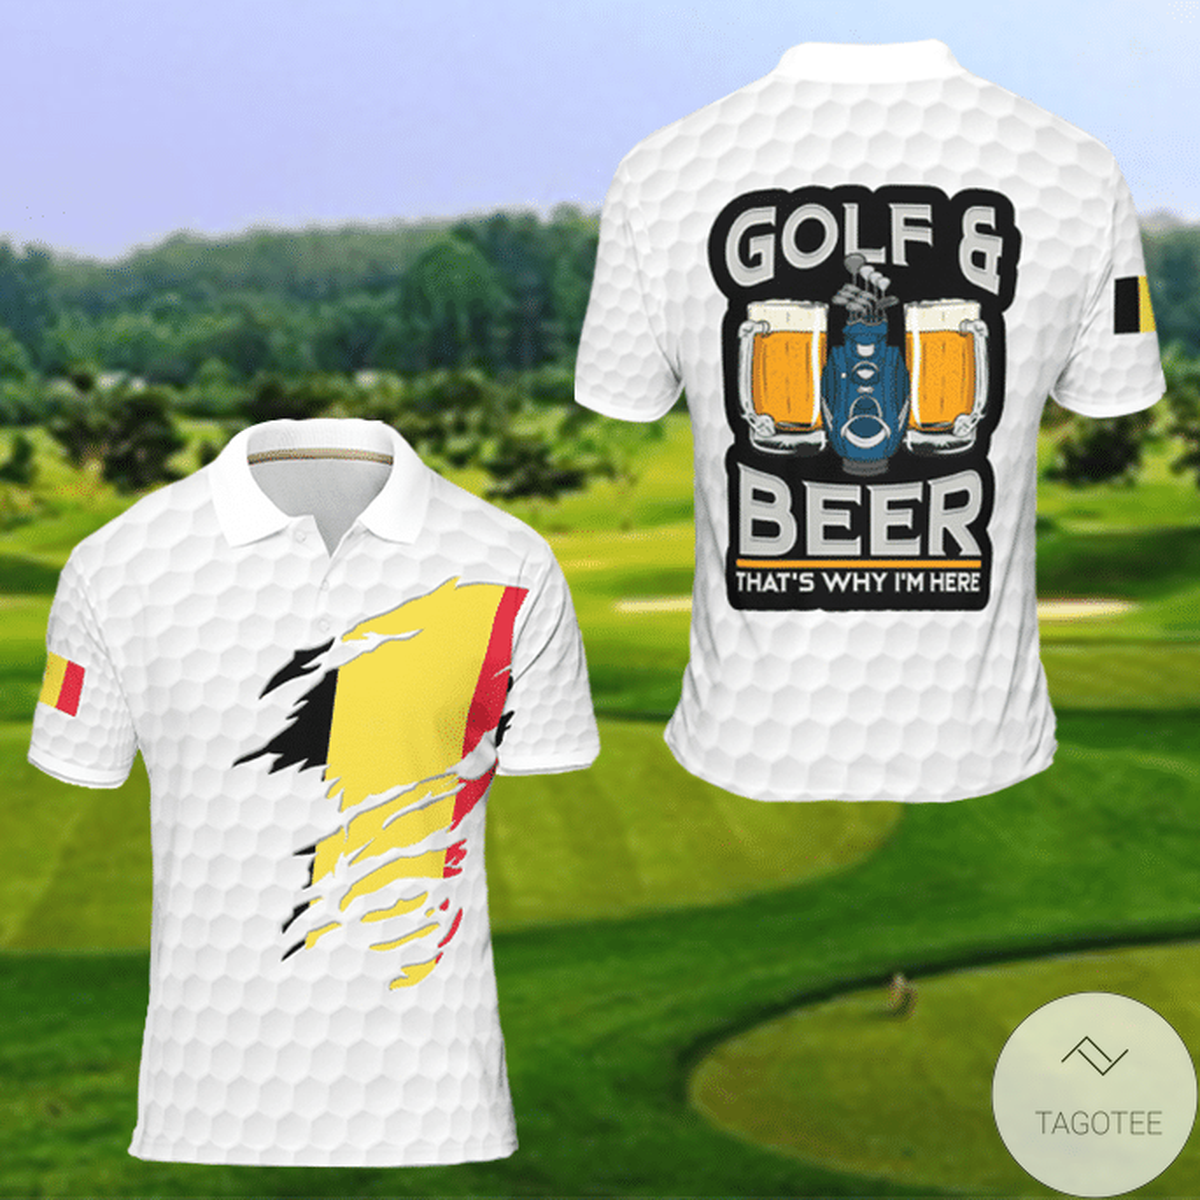 Belgium Golf And Beer That's Why I'm Here Golf Polo Shirt